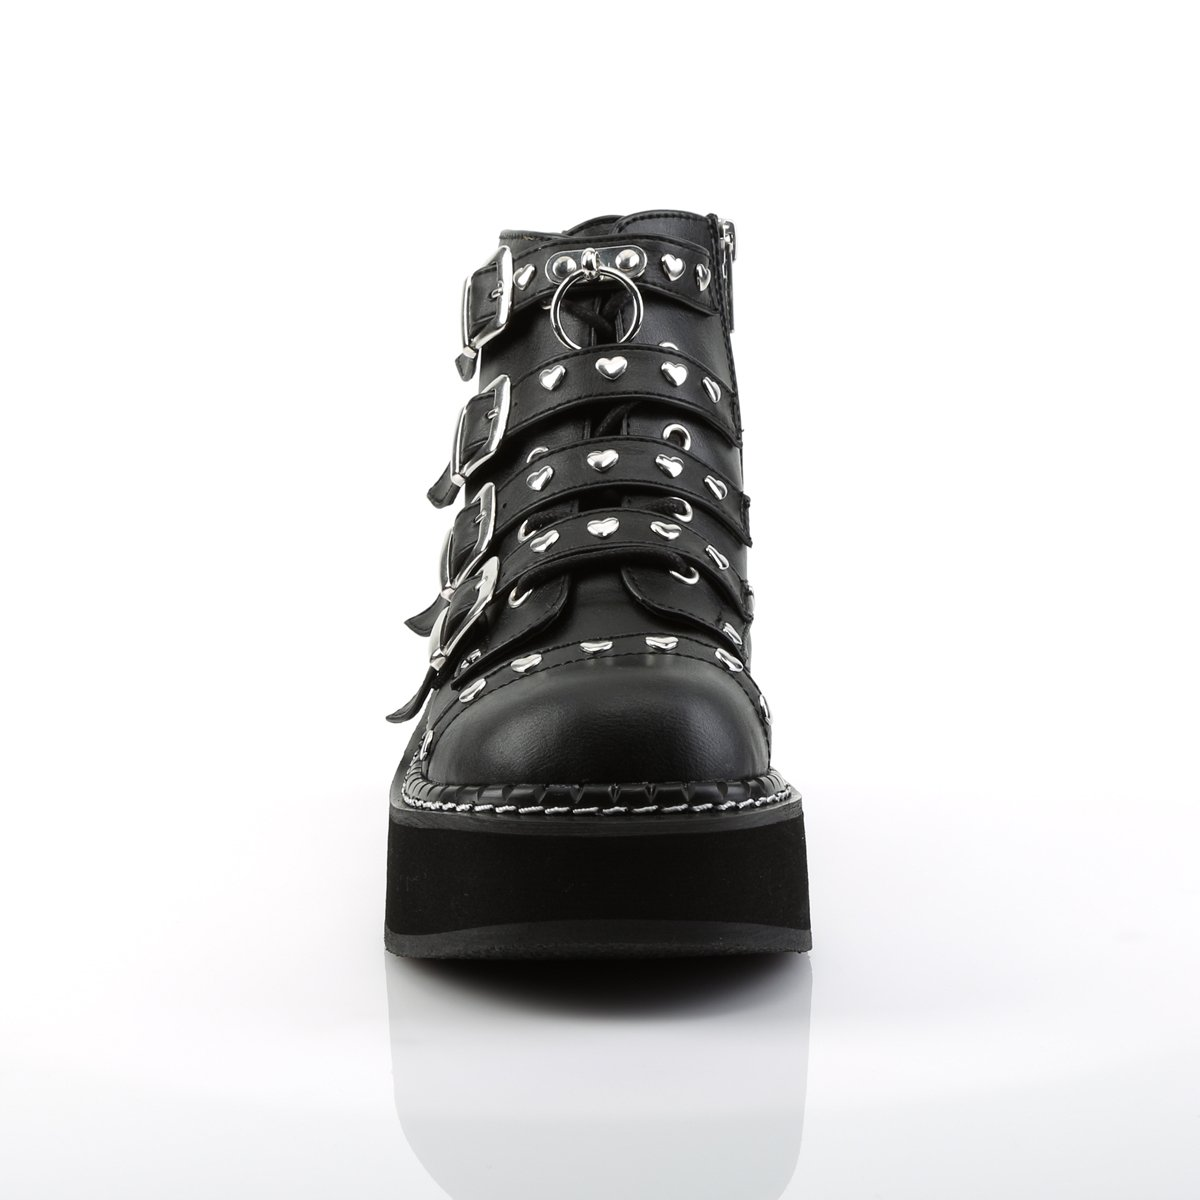 Demonia Emily-315 Women's Ankle Boots